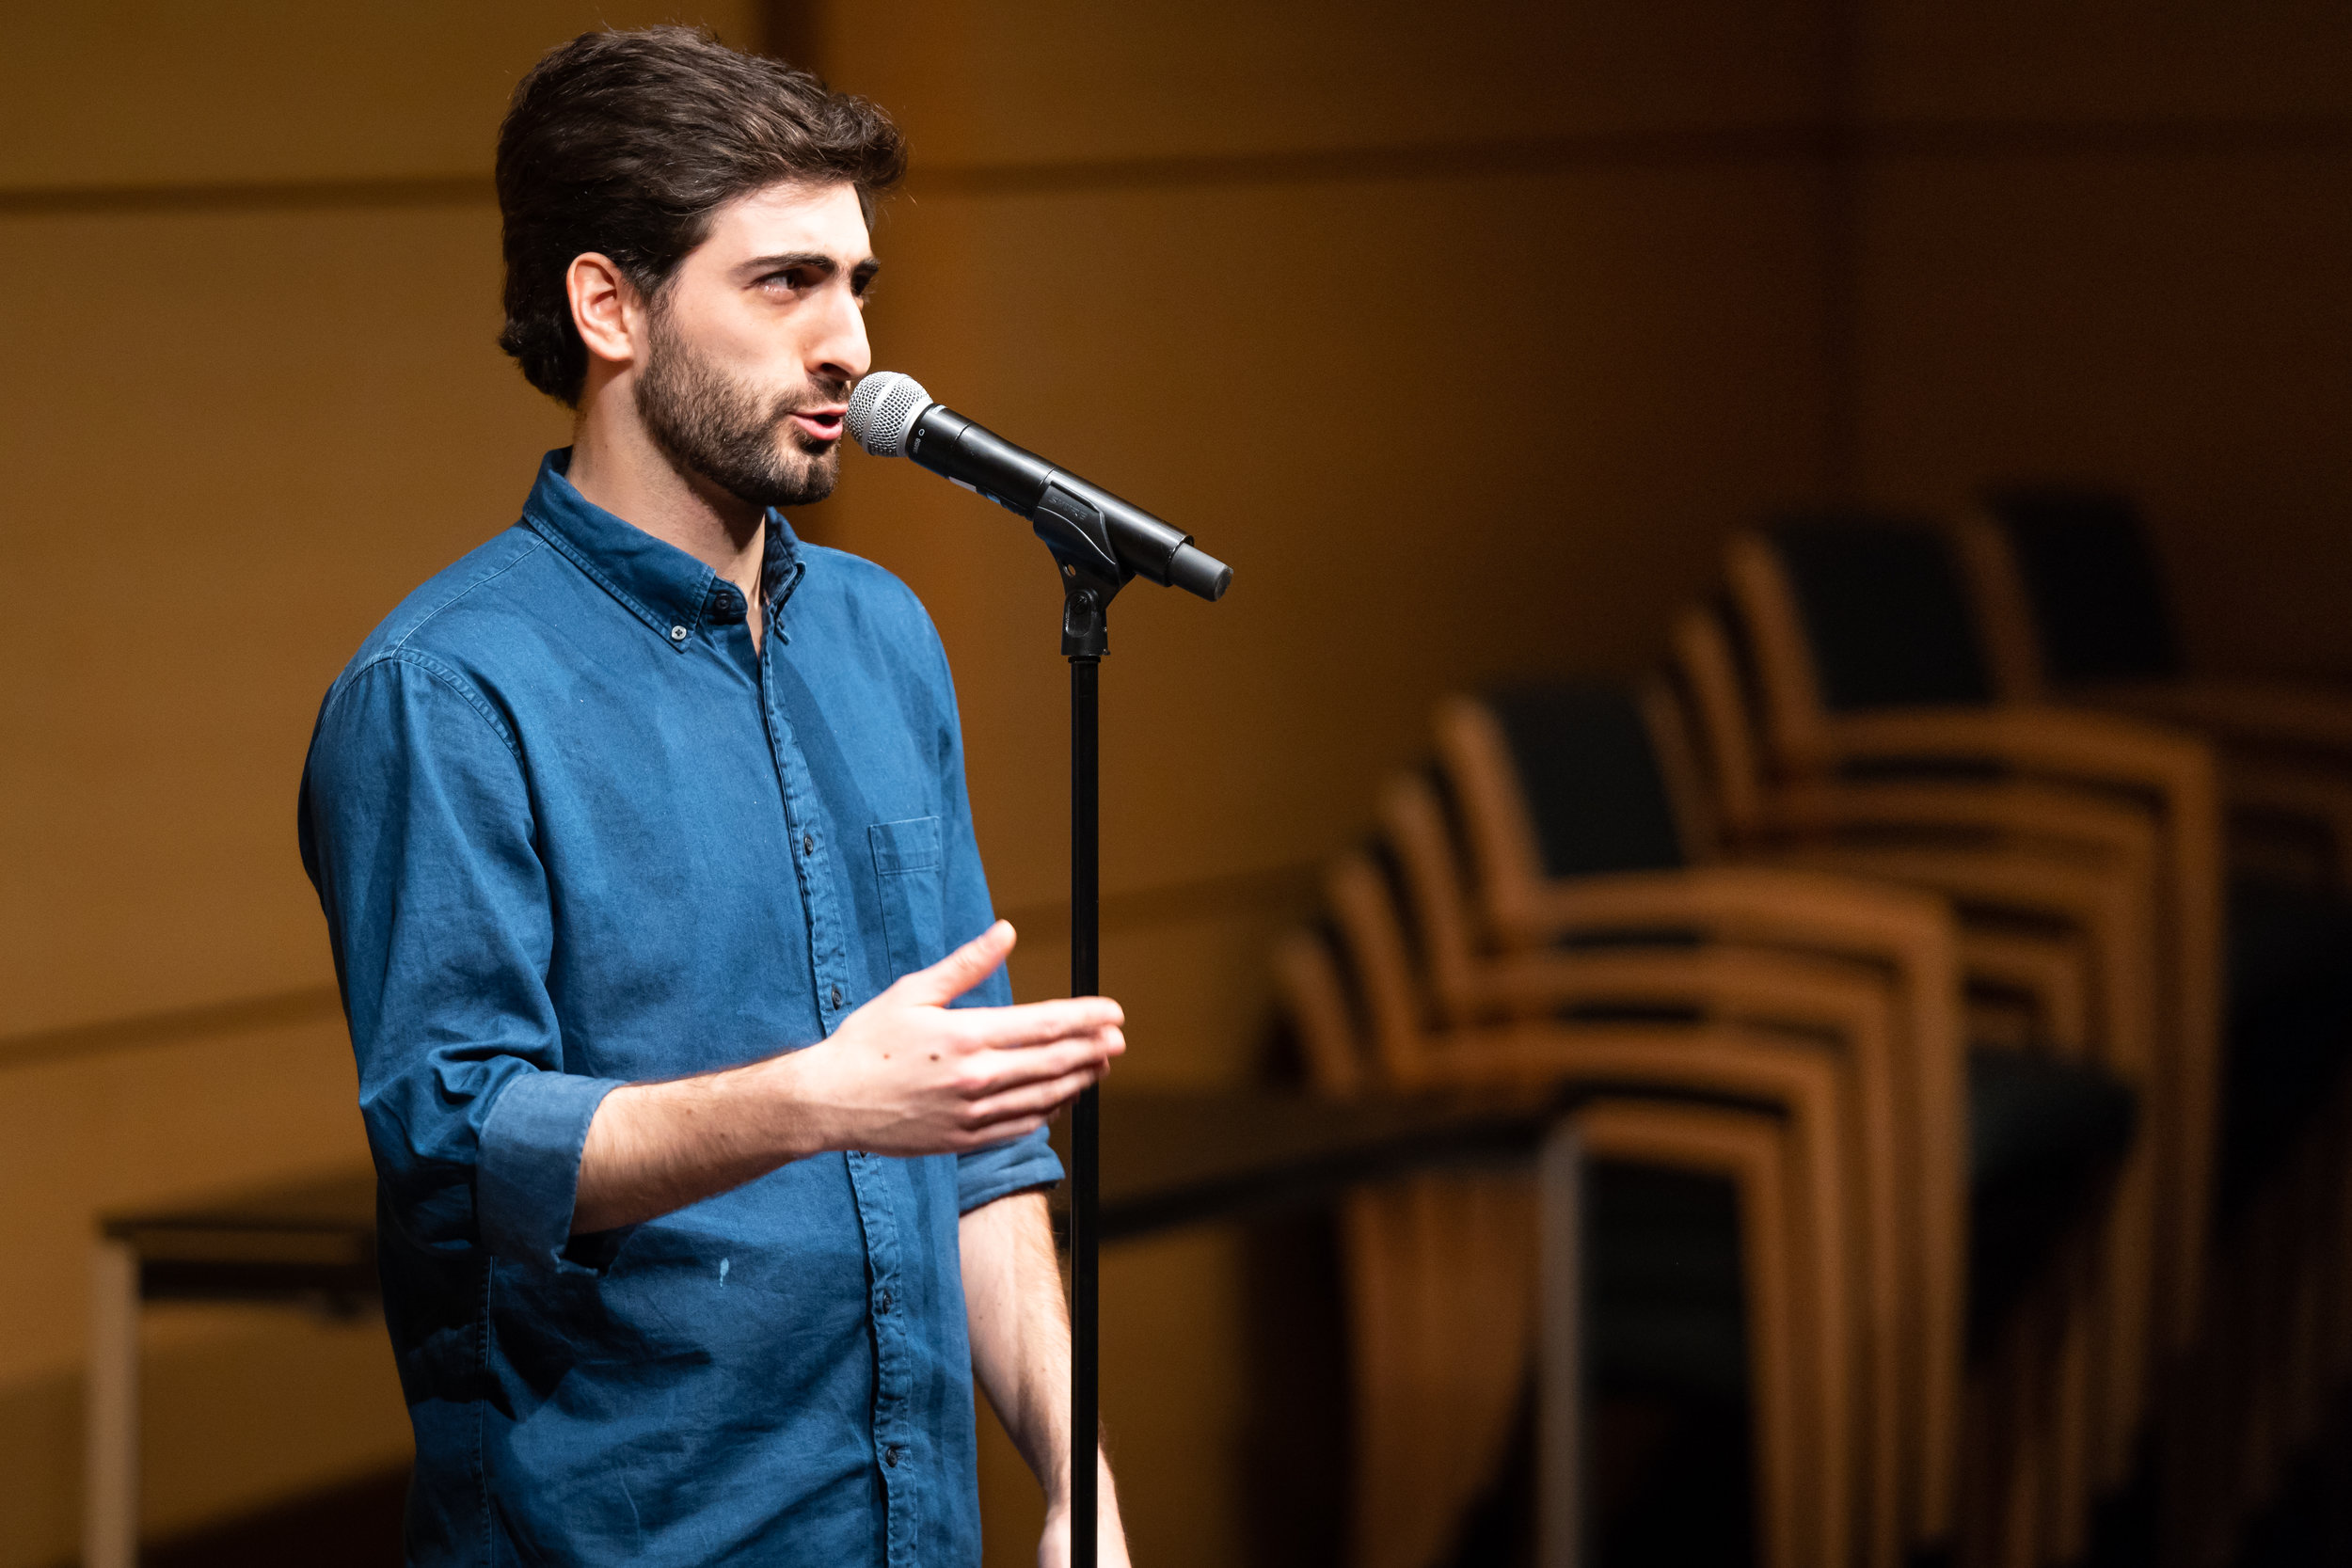 Gabriel Duran Rehbein shares his story with an audience at Memorial Sloan Kettering as part of a show done in partnership with them in December 2018. Photo by Zhen Qin.